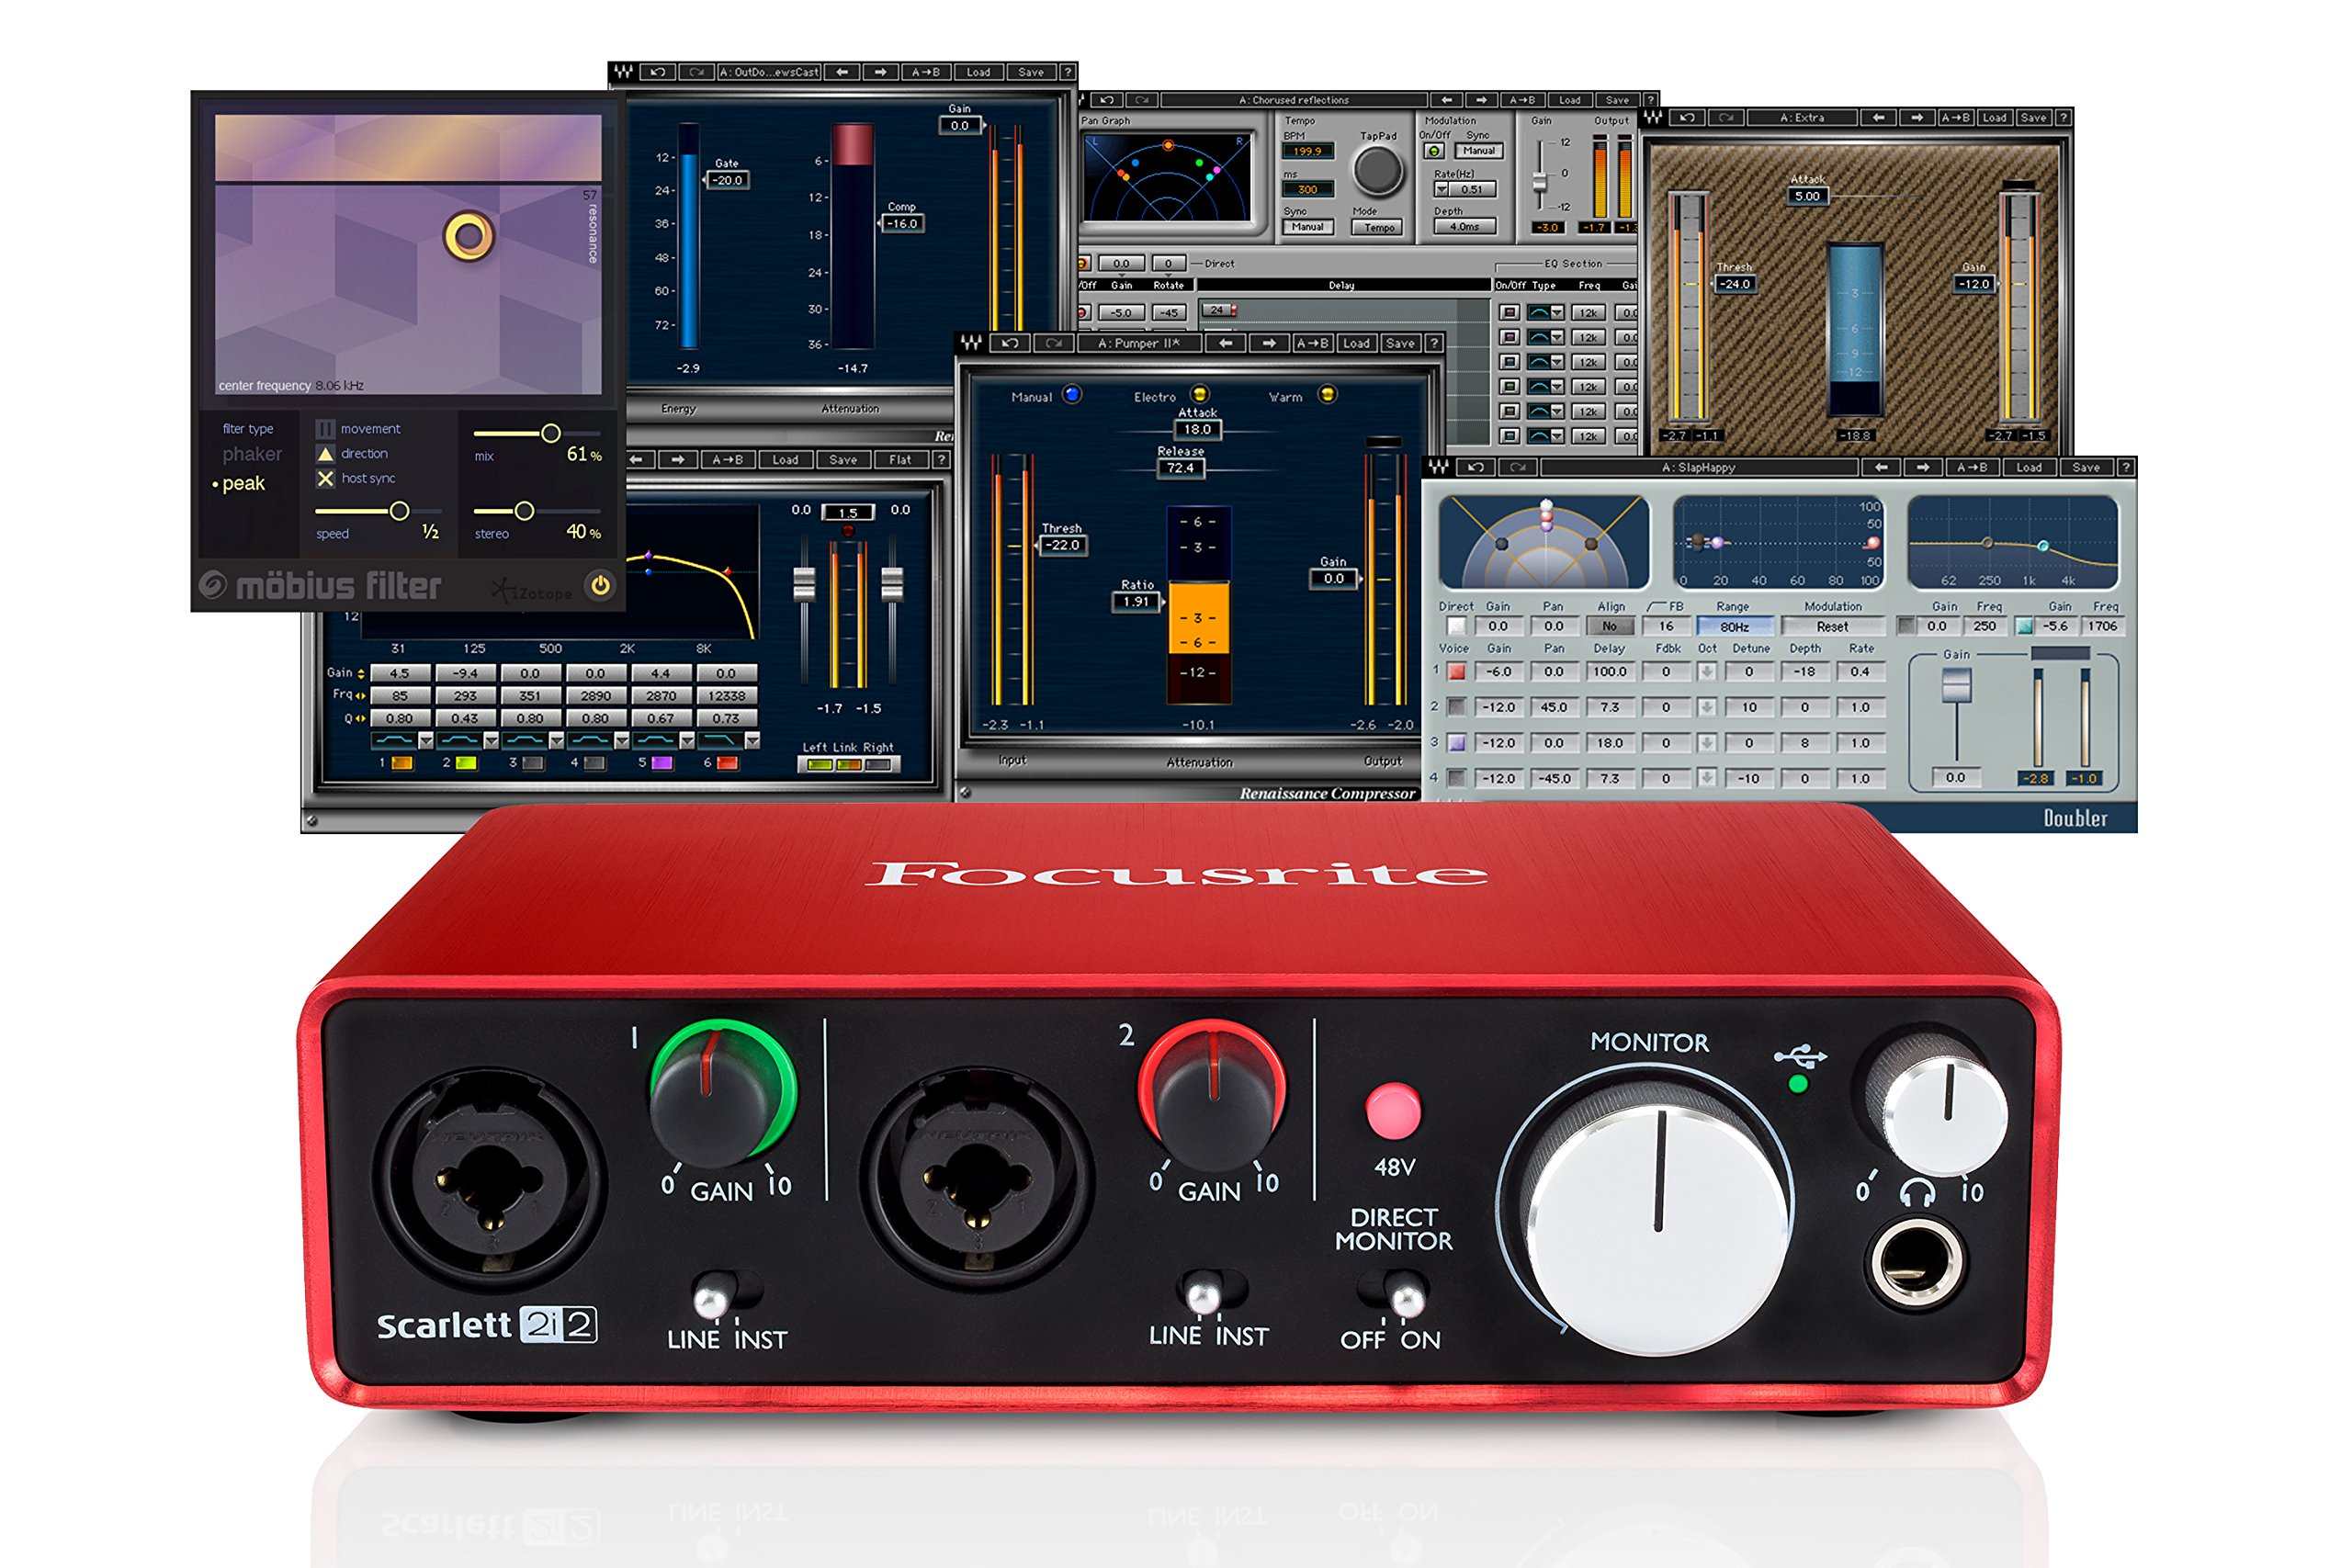 Focusrite Scarlett 2i2 (2nd Gen) USB Audio Interface + Waves Musicians 2 + iZotope Mobius Filter Bundle